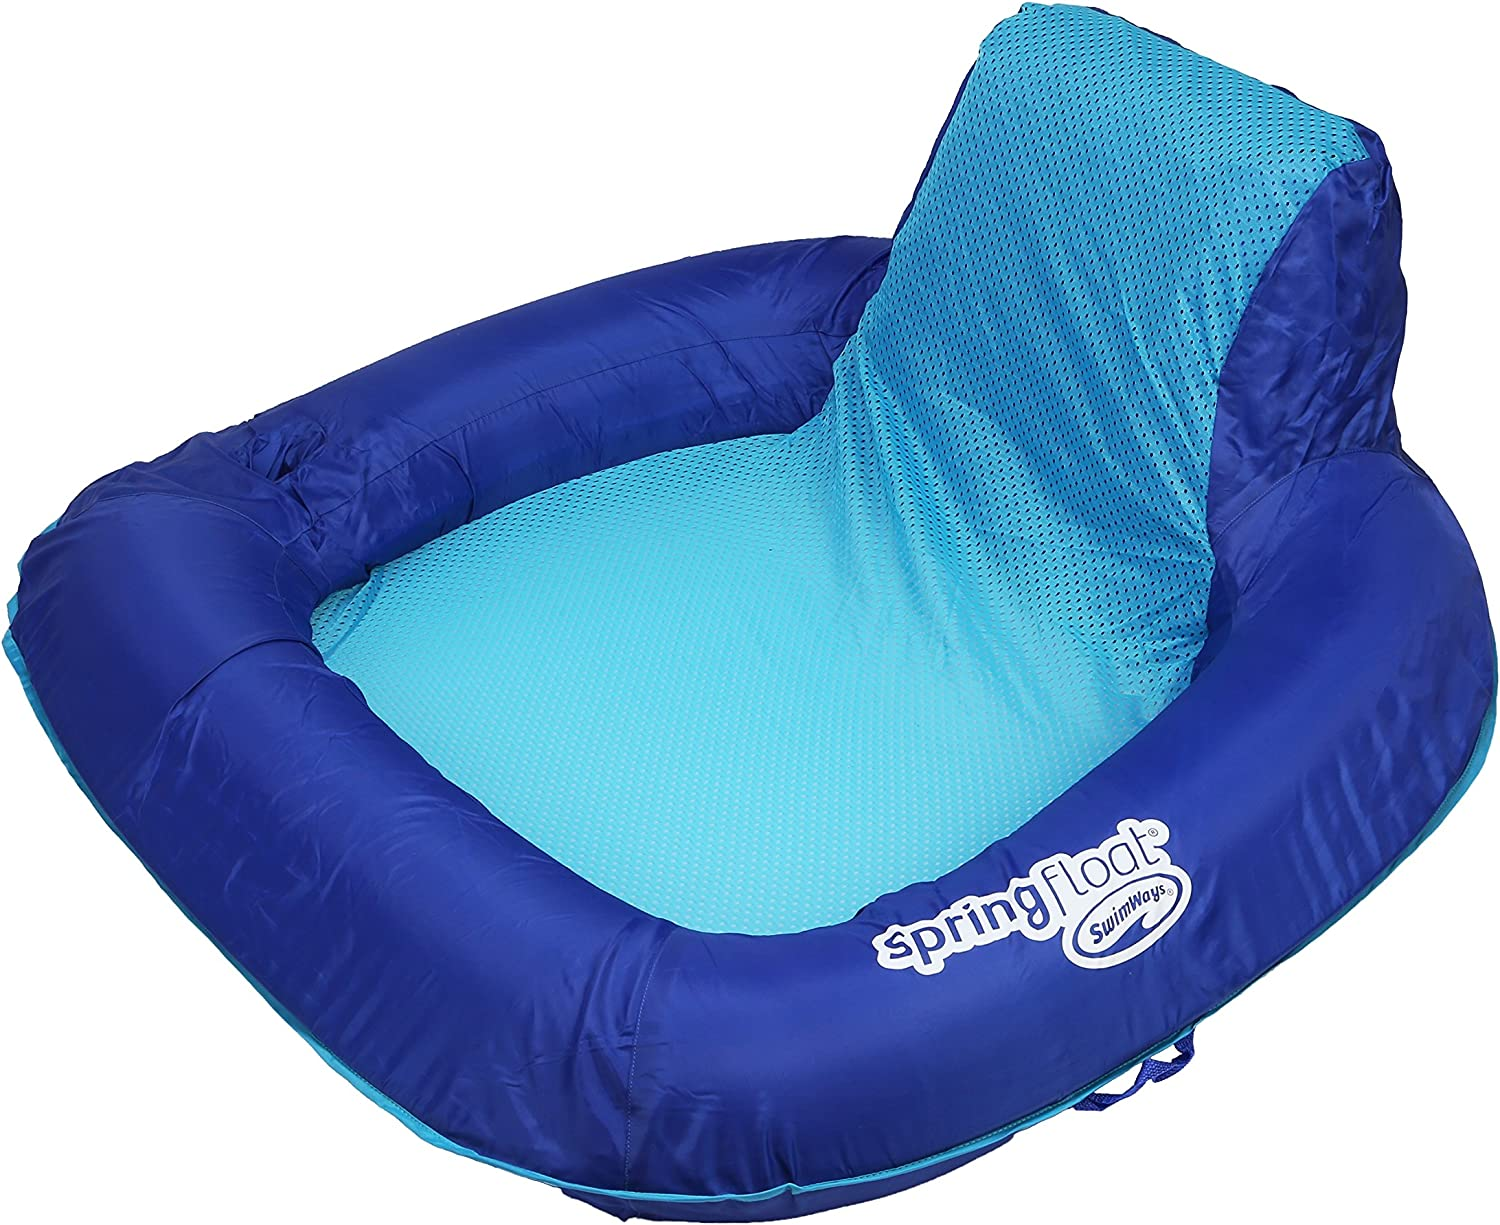 Spring Float Sunseat Floating Pool Lounge Chair For Floatinng Seat New